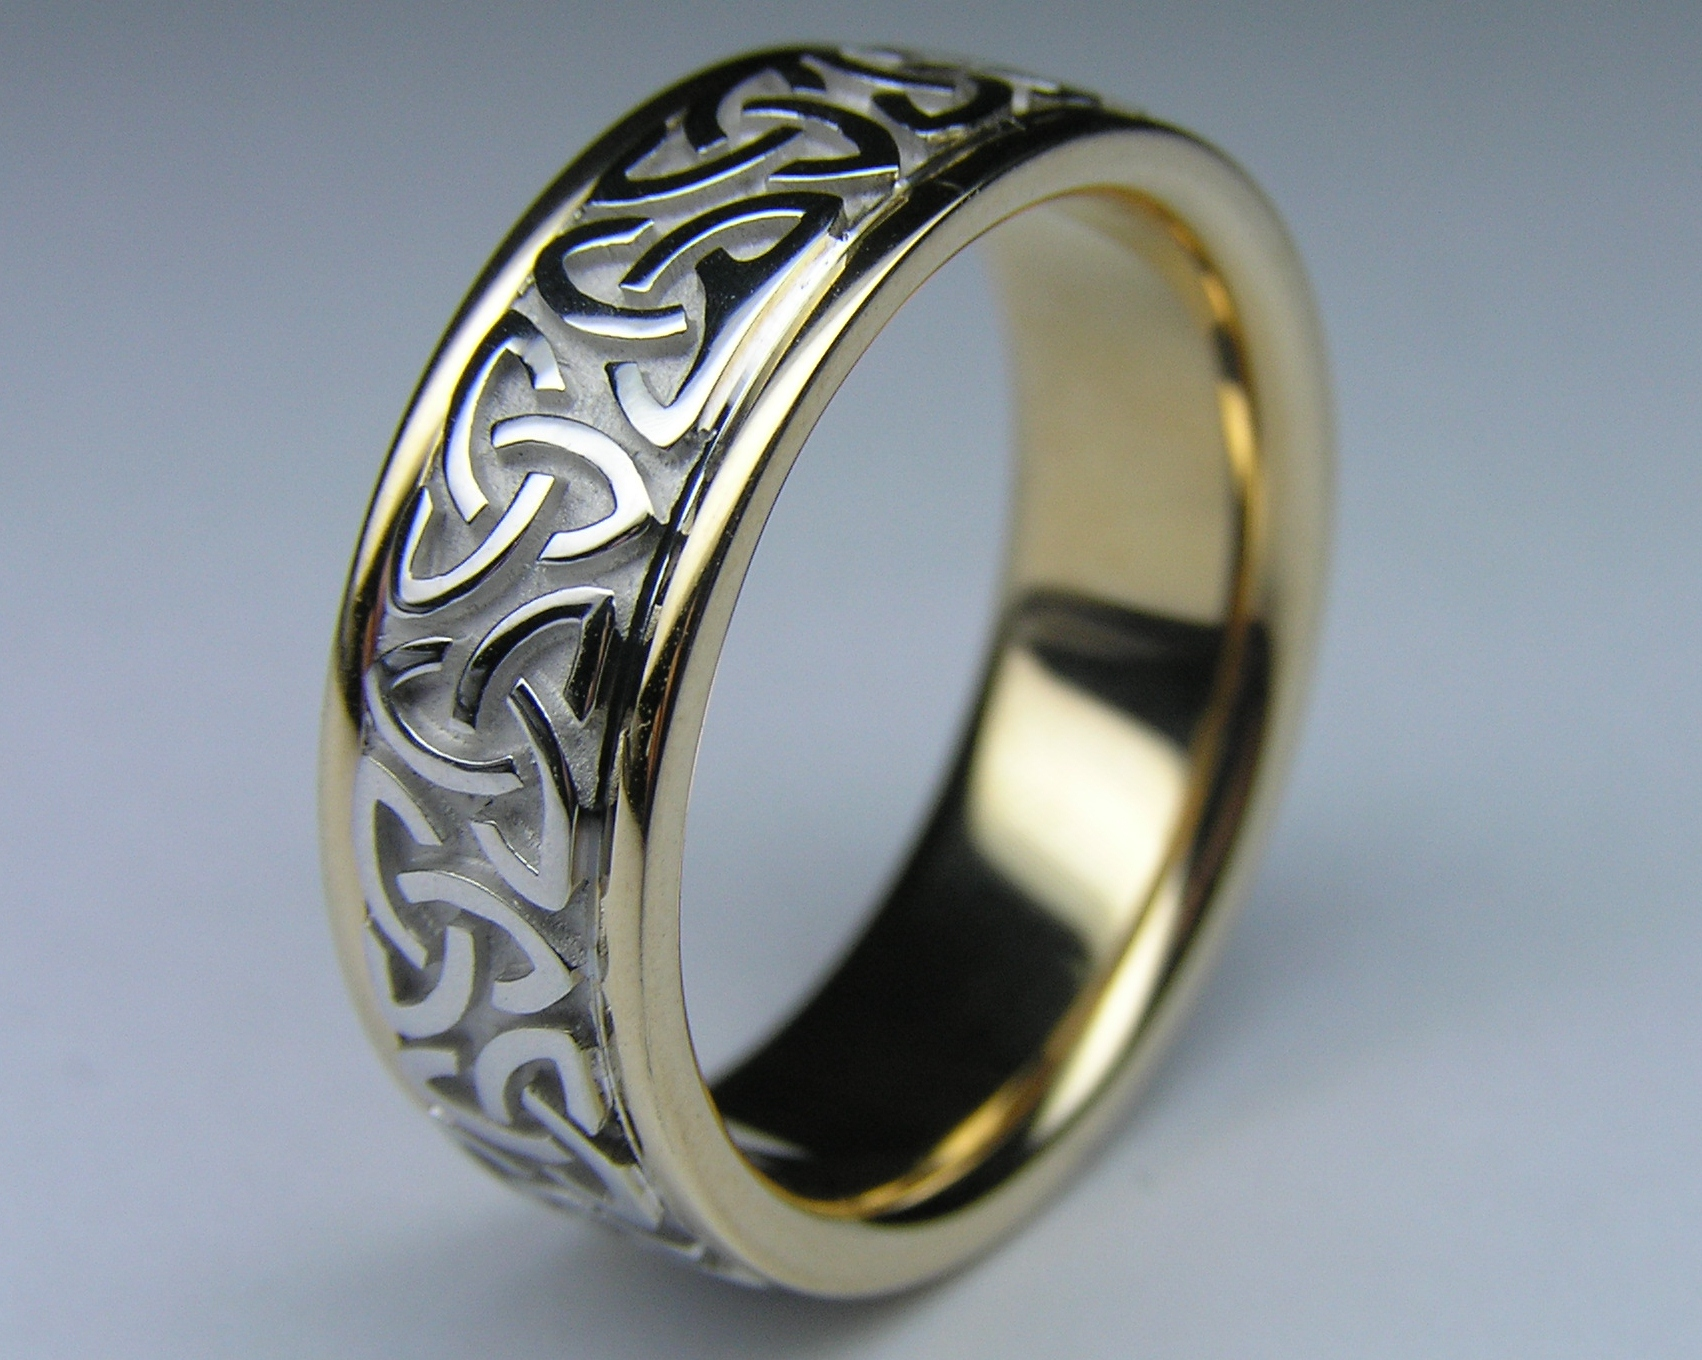 name zoom rings wedding over celtic engraved knot band drag roll larger image to sterling couples silver